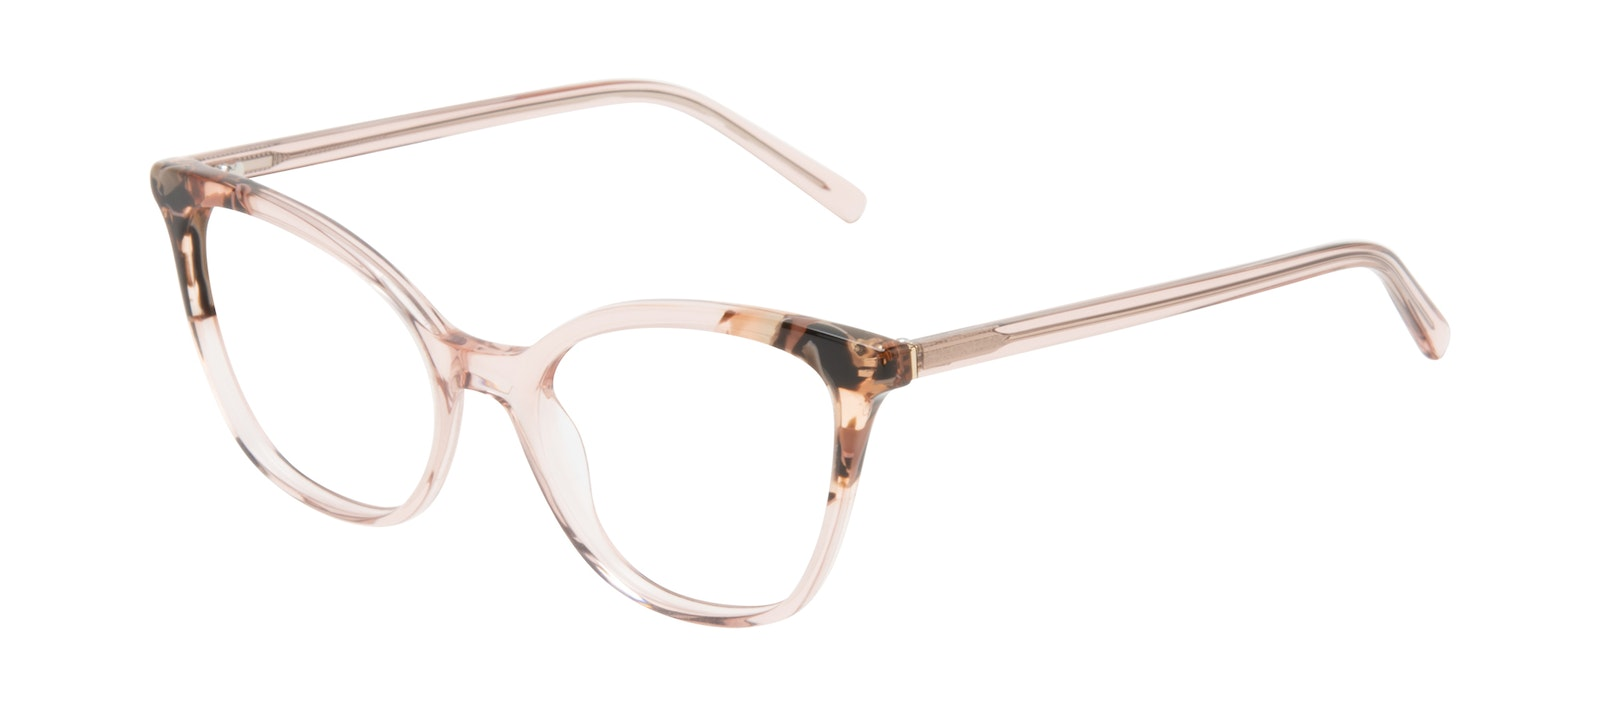 Affordable Fashion Glasses Cat Eye Eyeglasses Women Tippi Pink Quartz Tilt